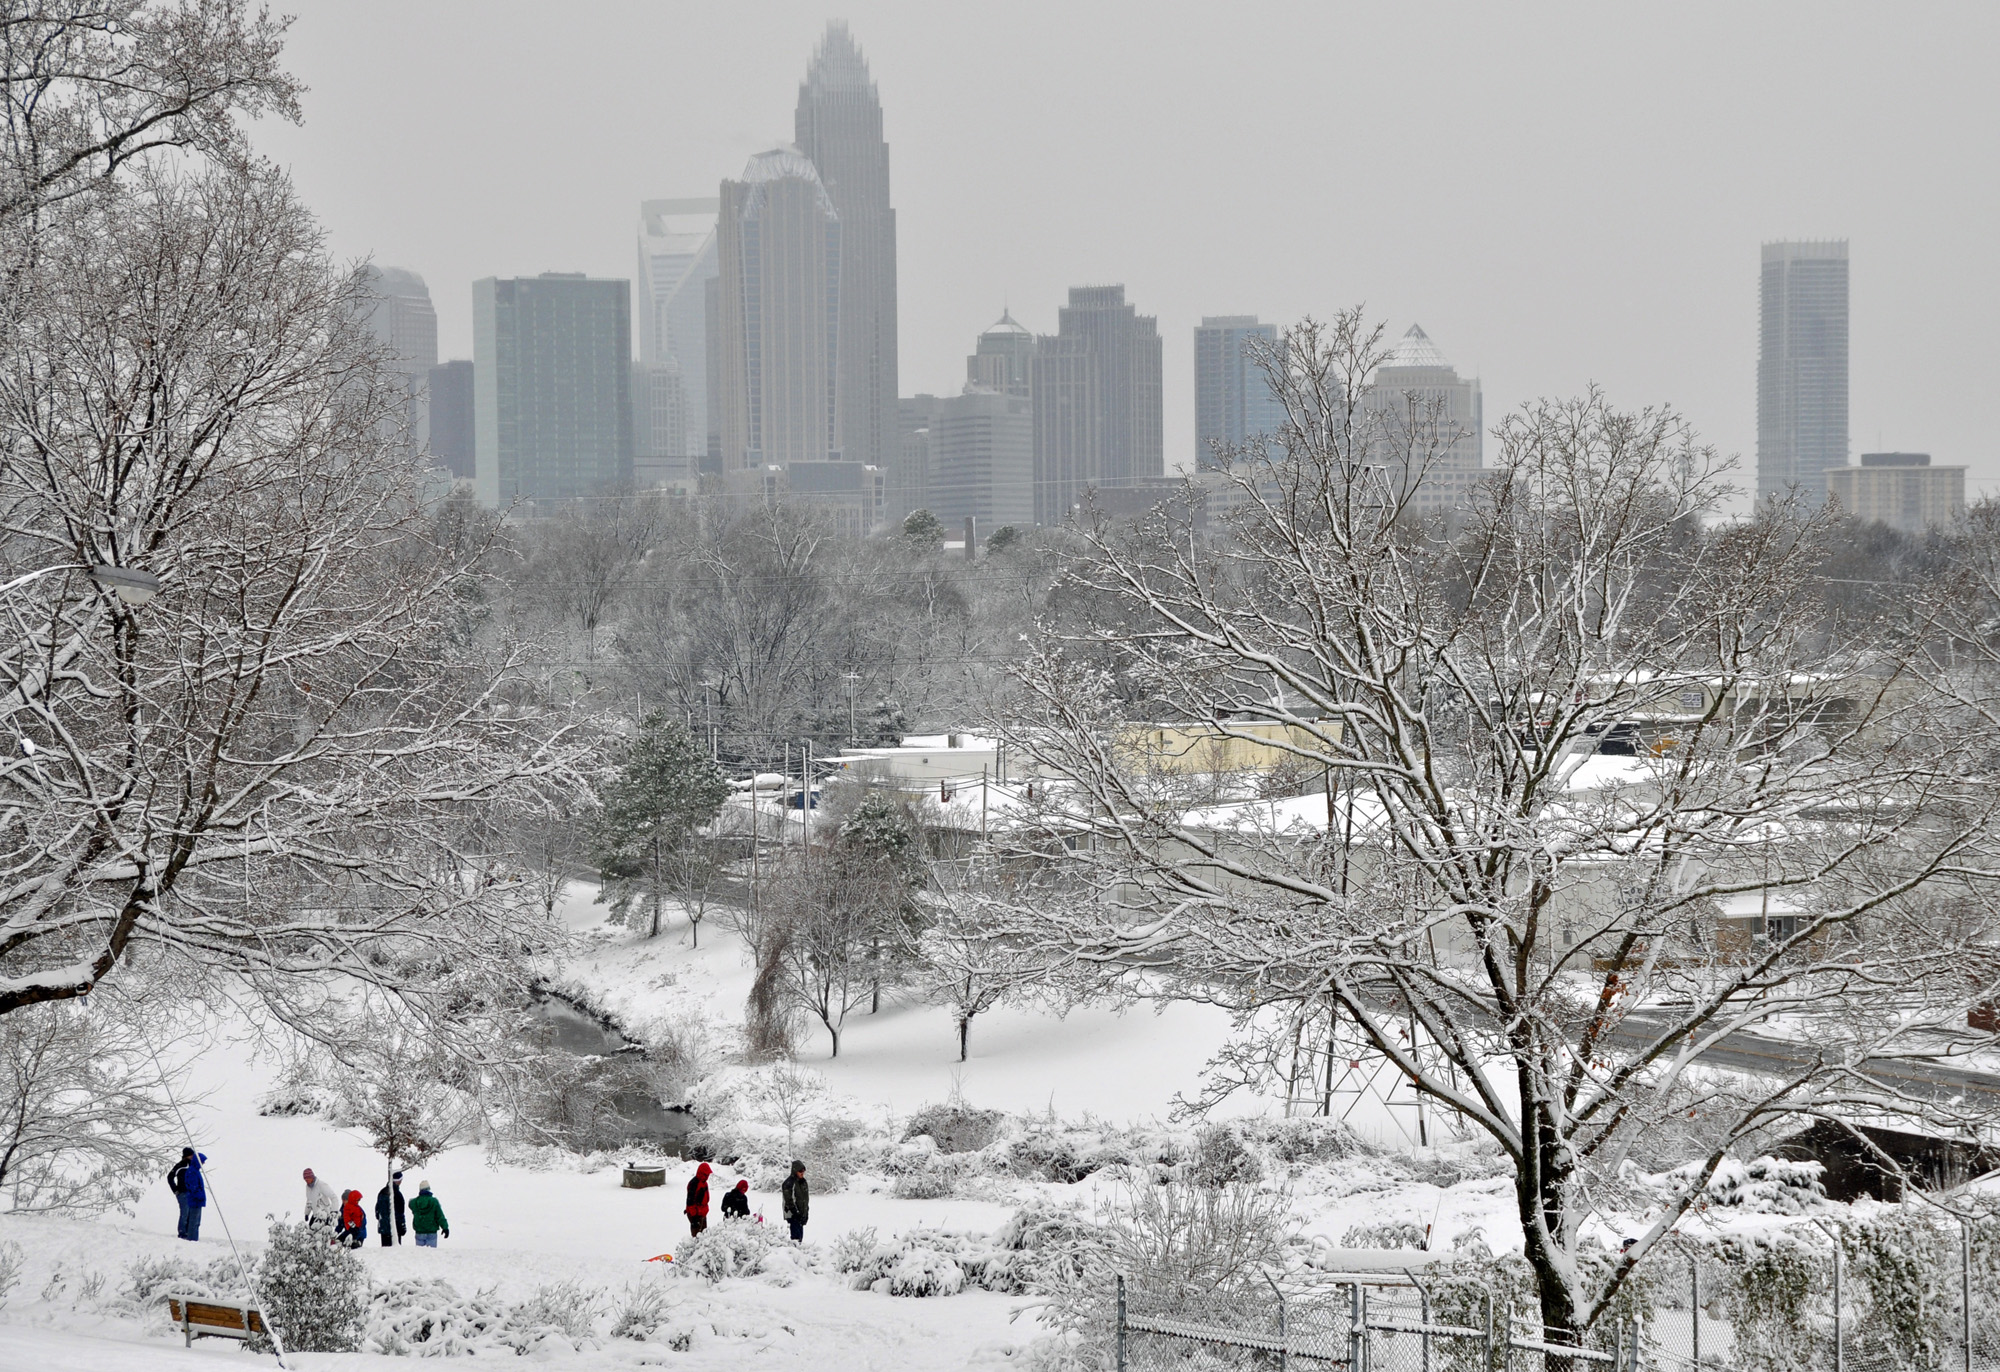 Snow in Charlotte the day after Christmas